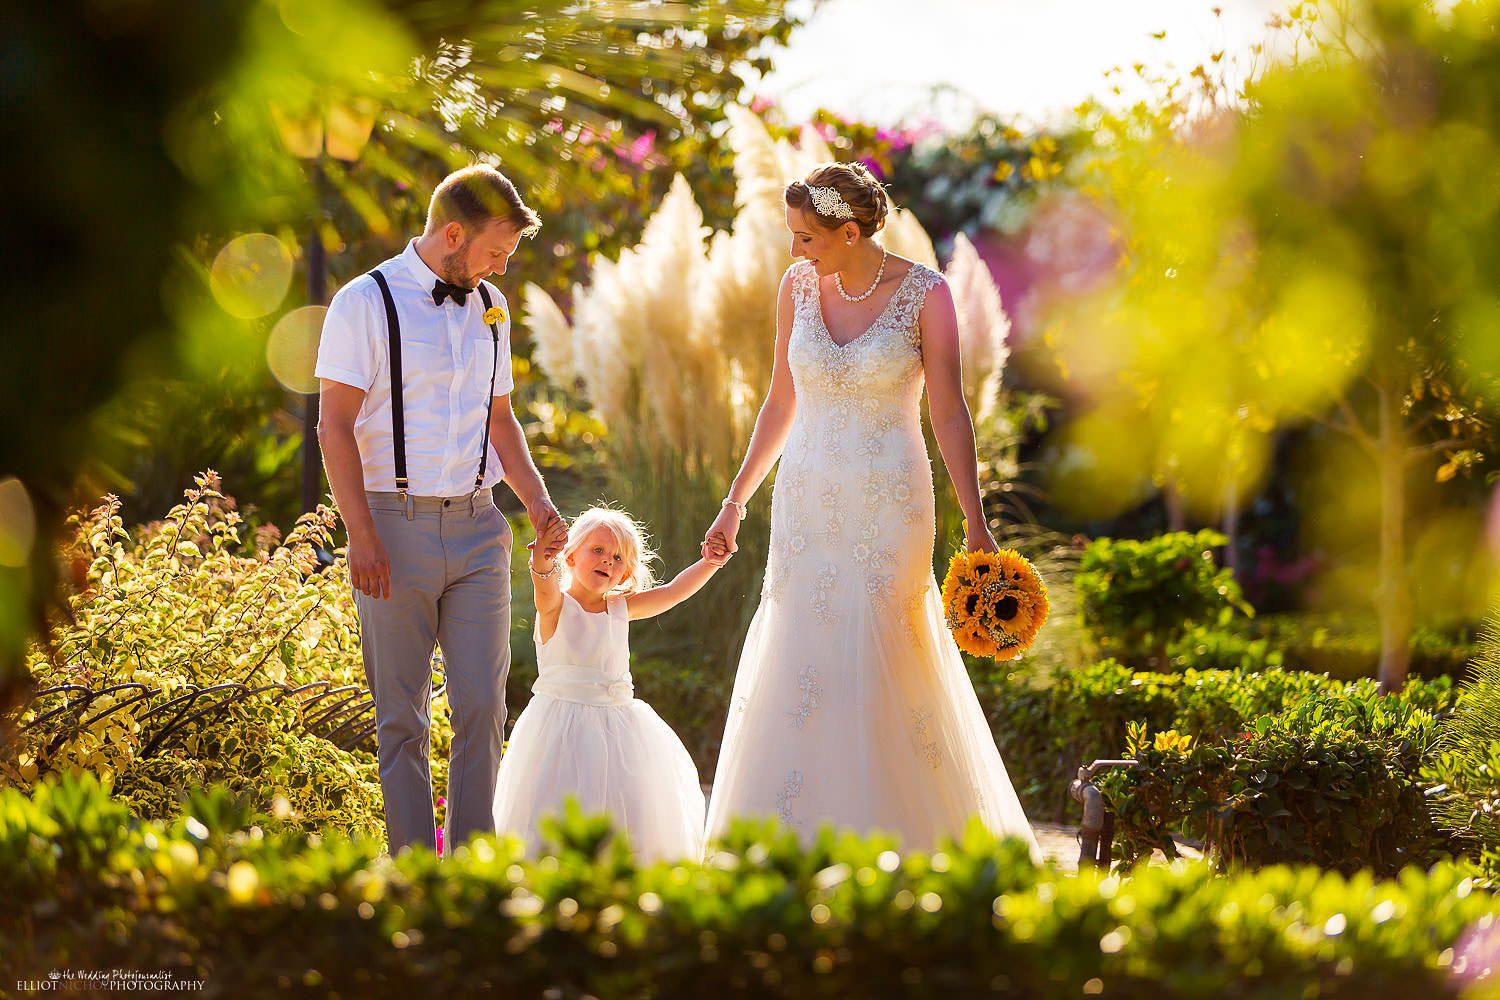 Palazzo Parisio weddings - destination wedding photographer capturing newlyweds with their young daughter in the gardens of the Palazzo Parisio in Naxxar, Malta.